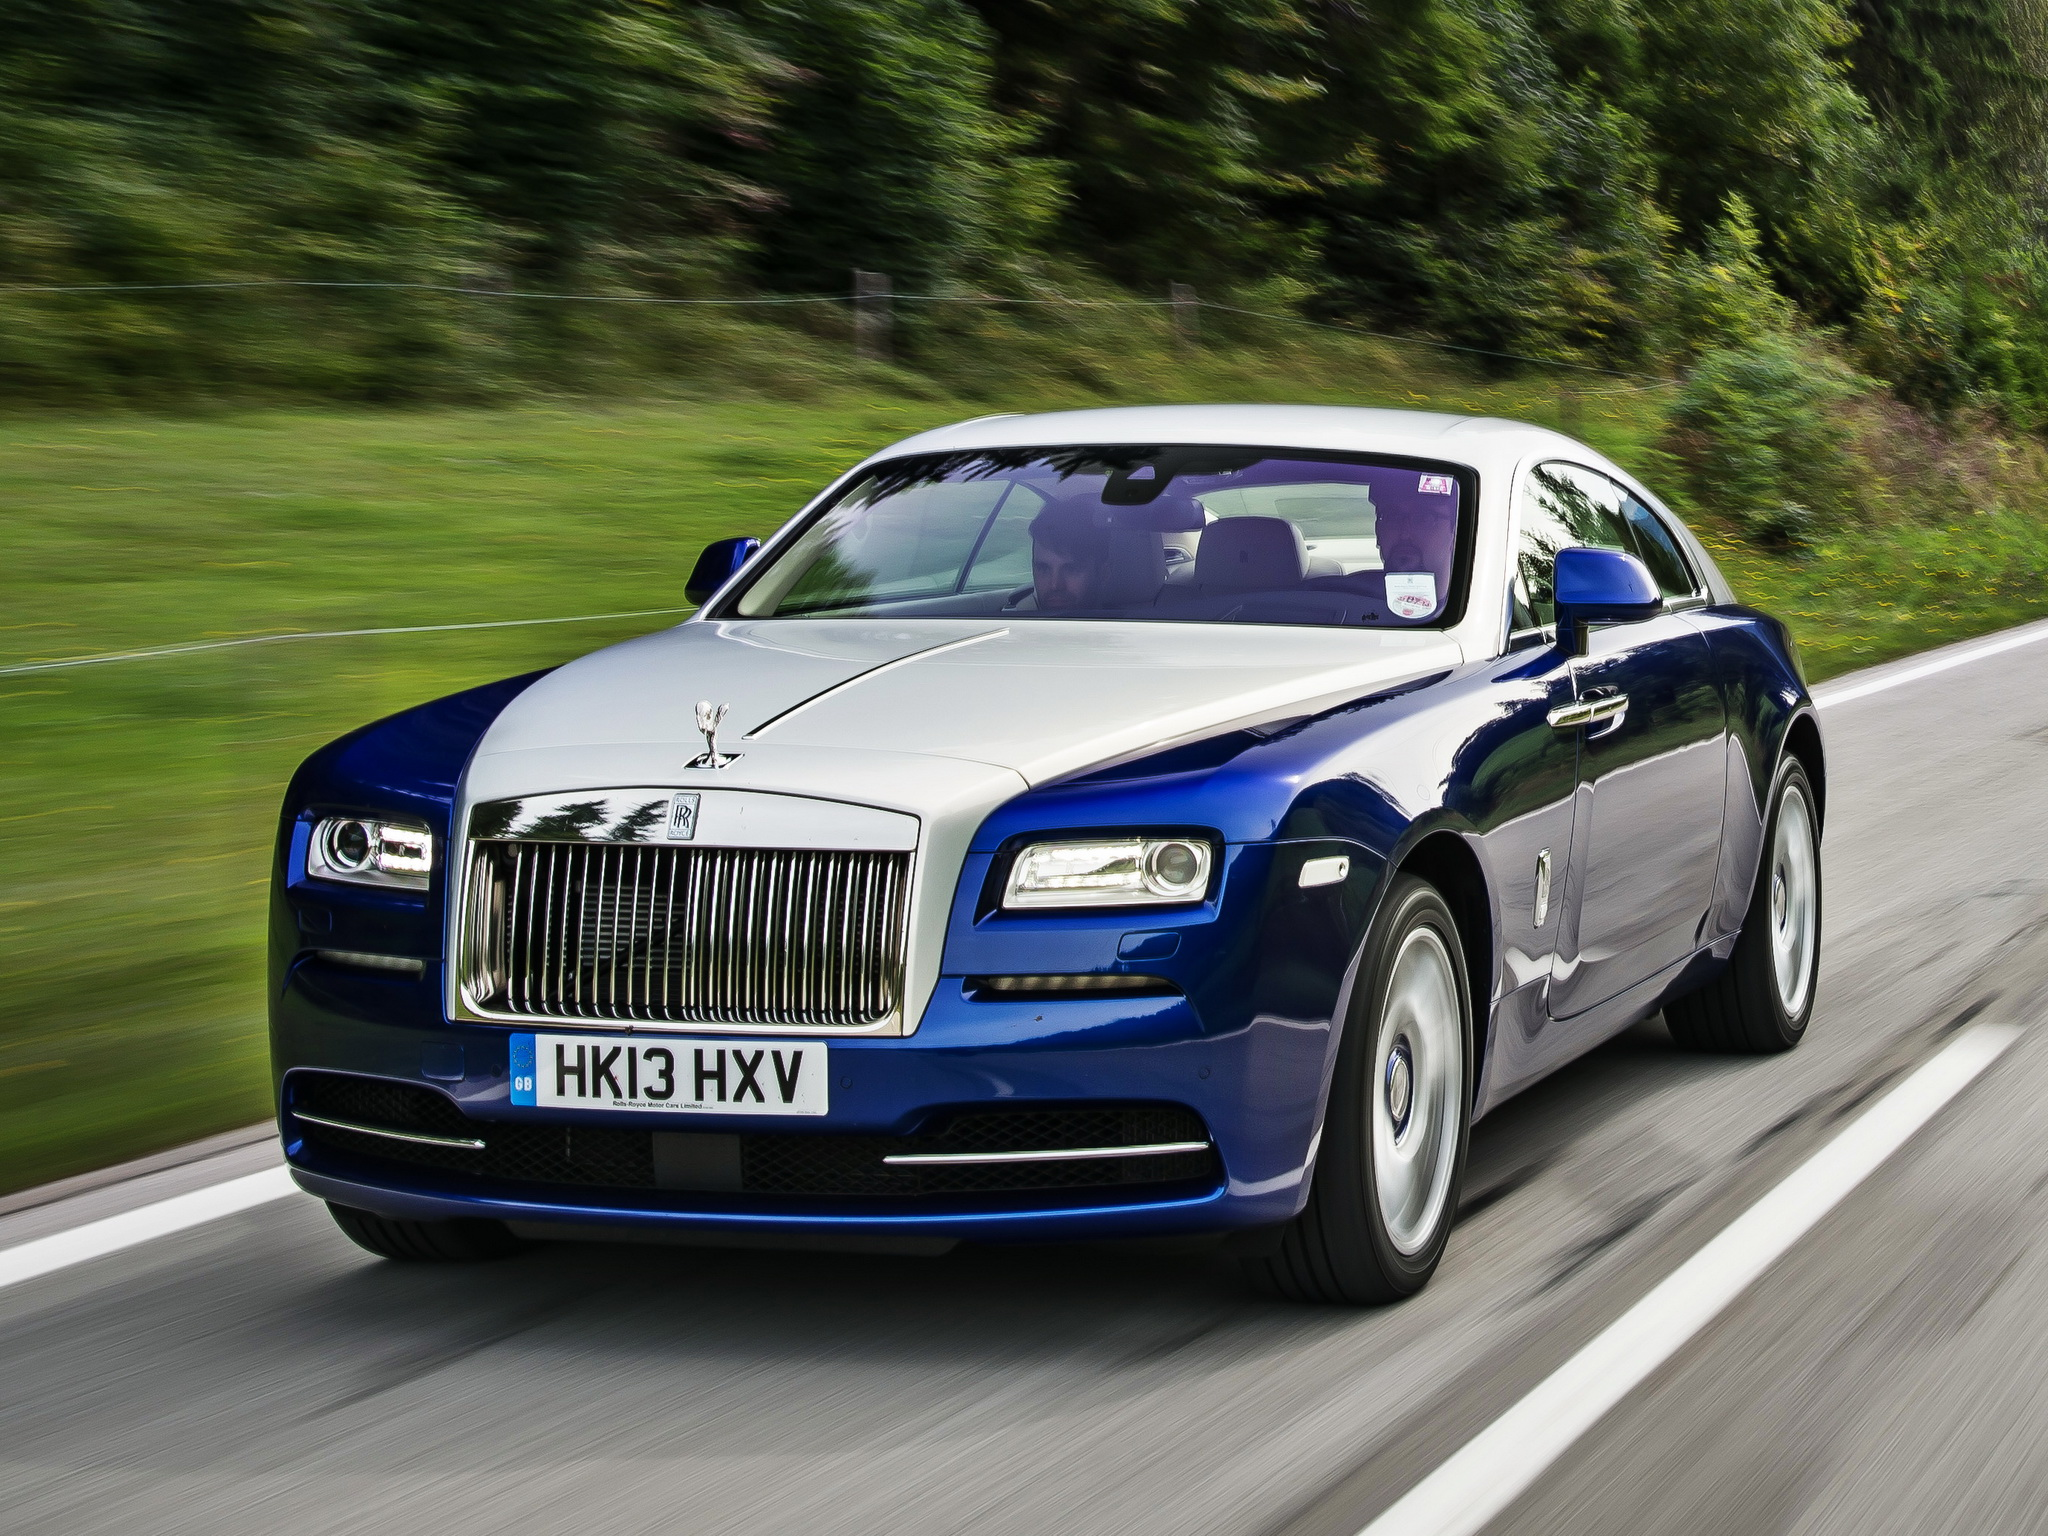 2013 Rolls Royce Wraith Luxury Supercar Rq Wallpaper